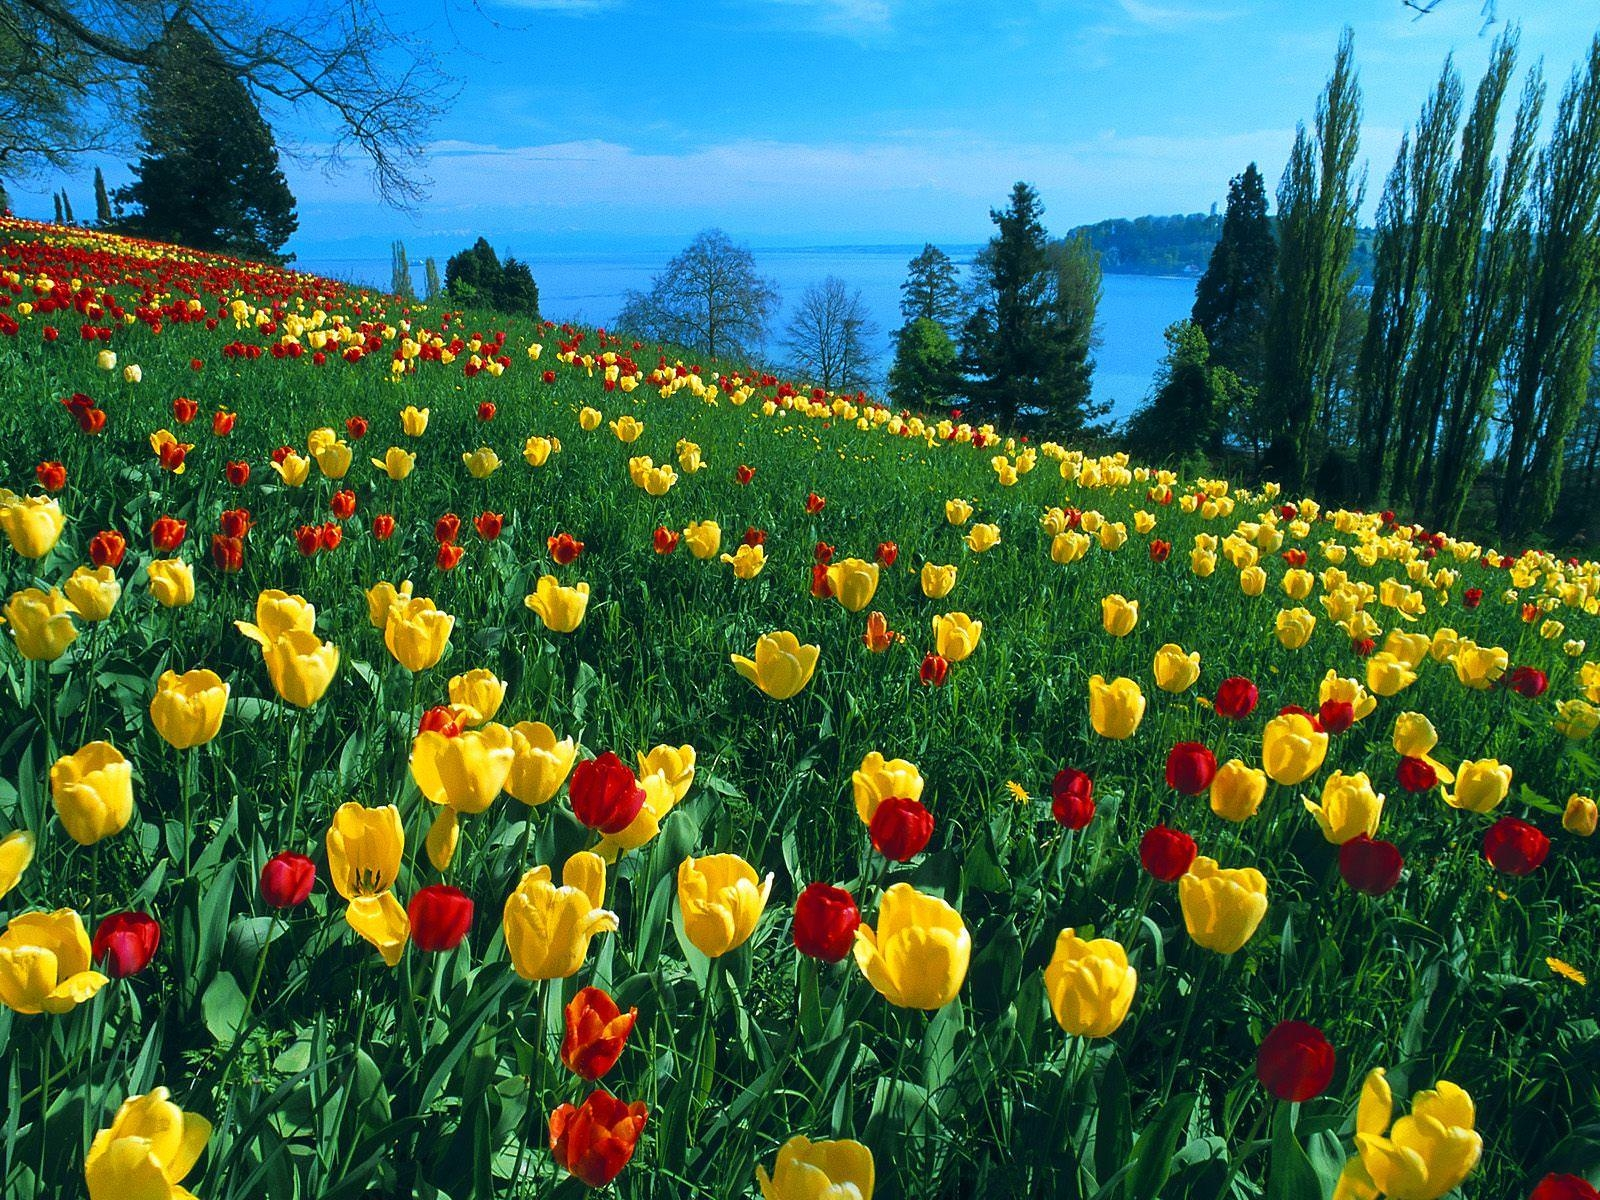 Yellow & Red Tulip Field Wallpaper